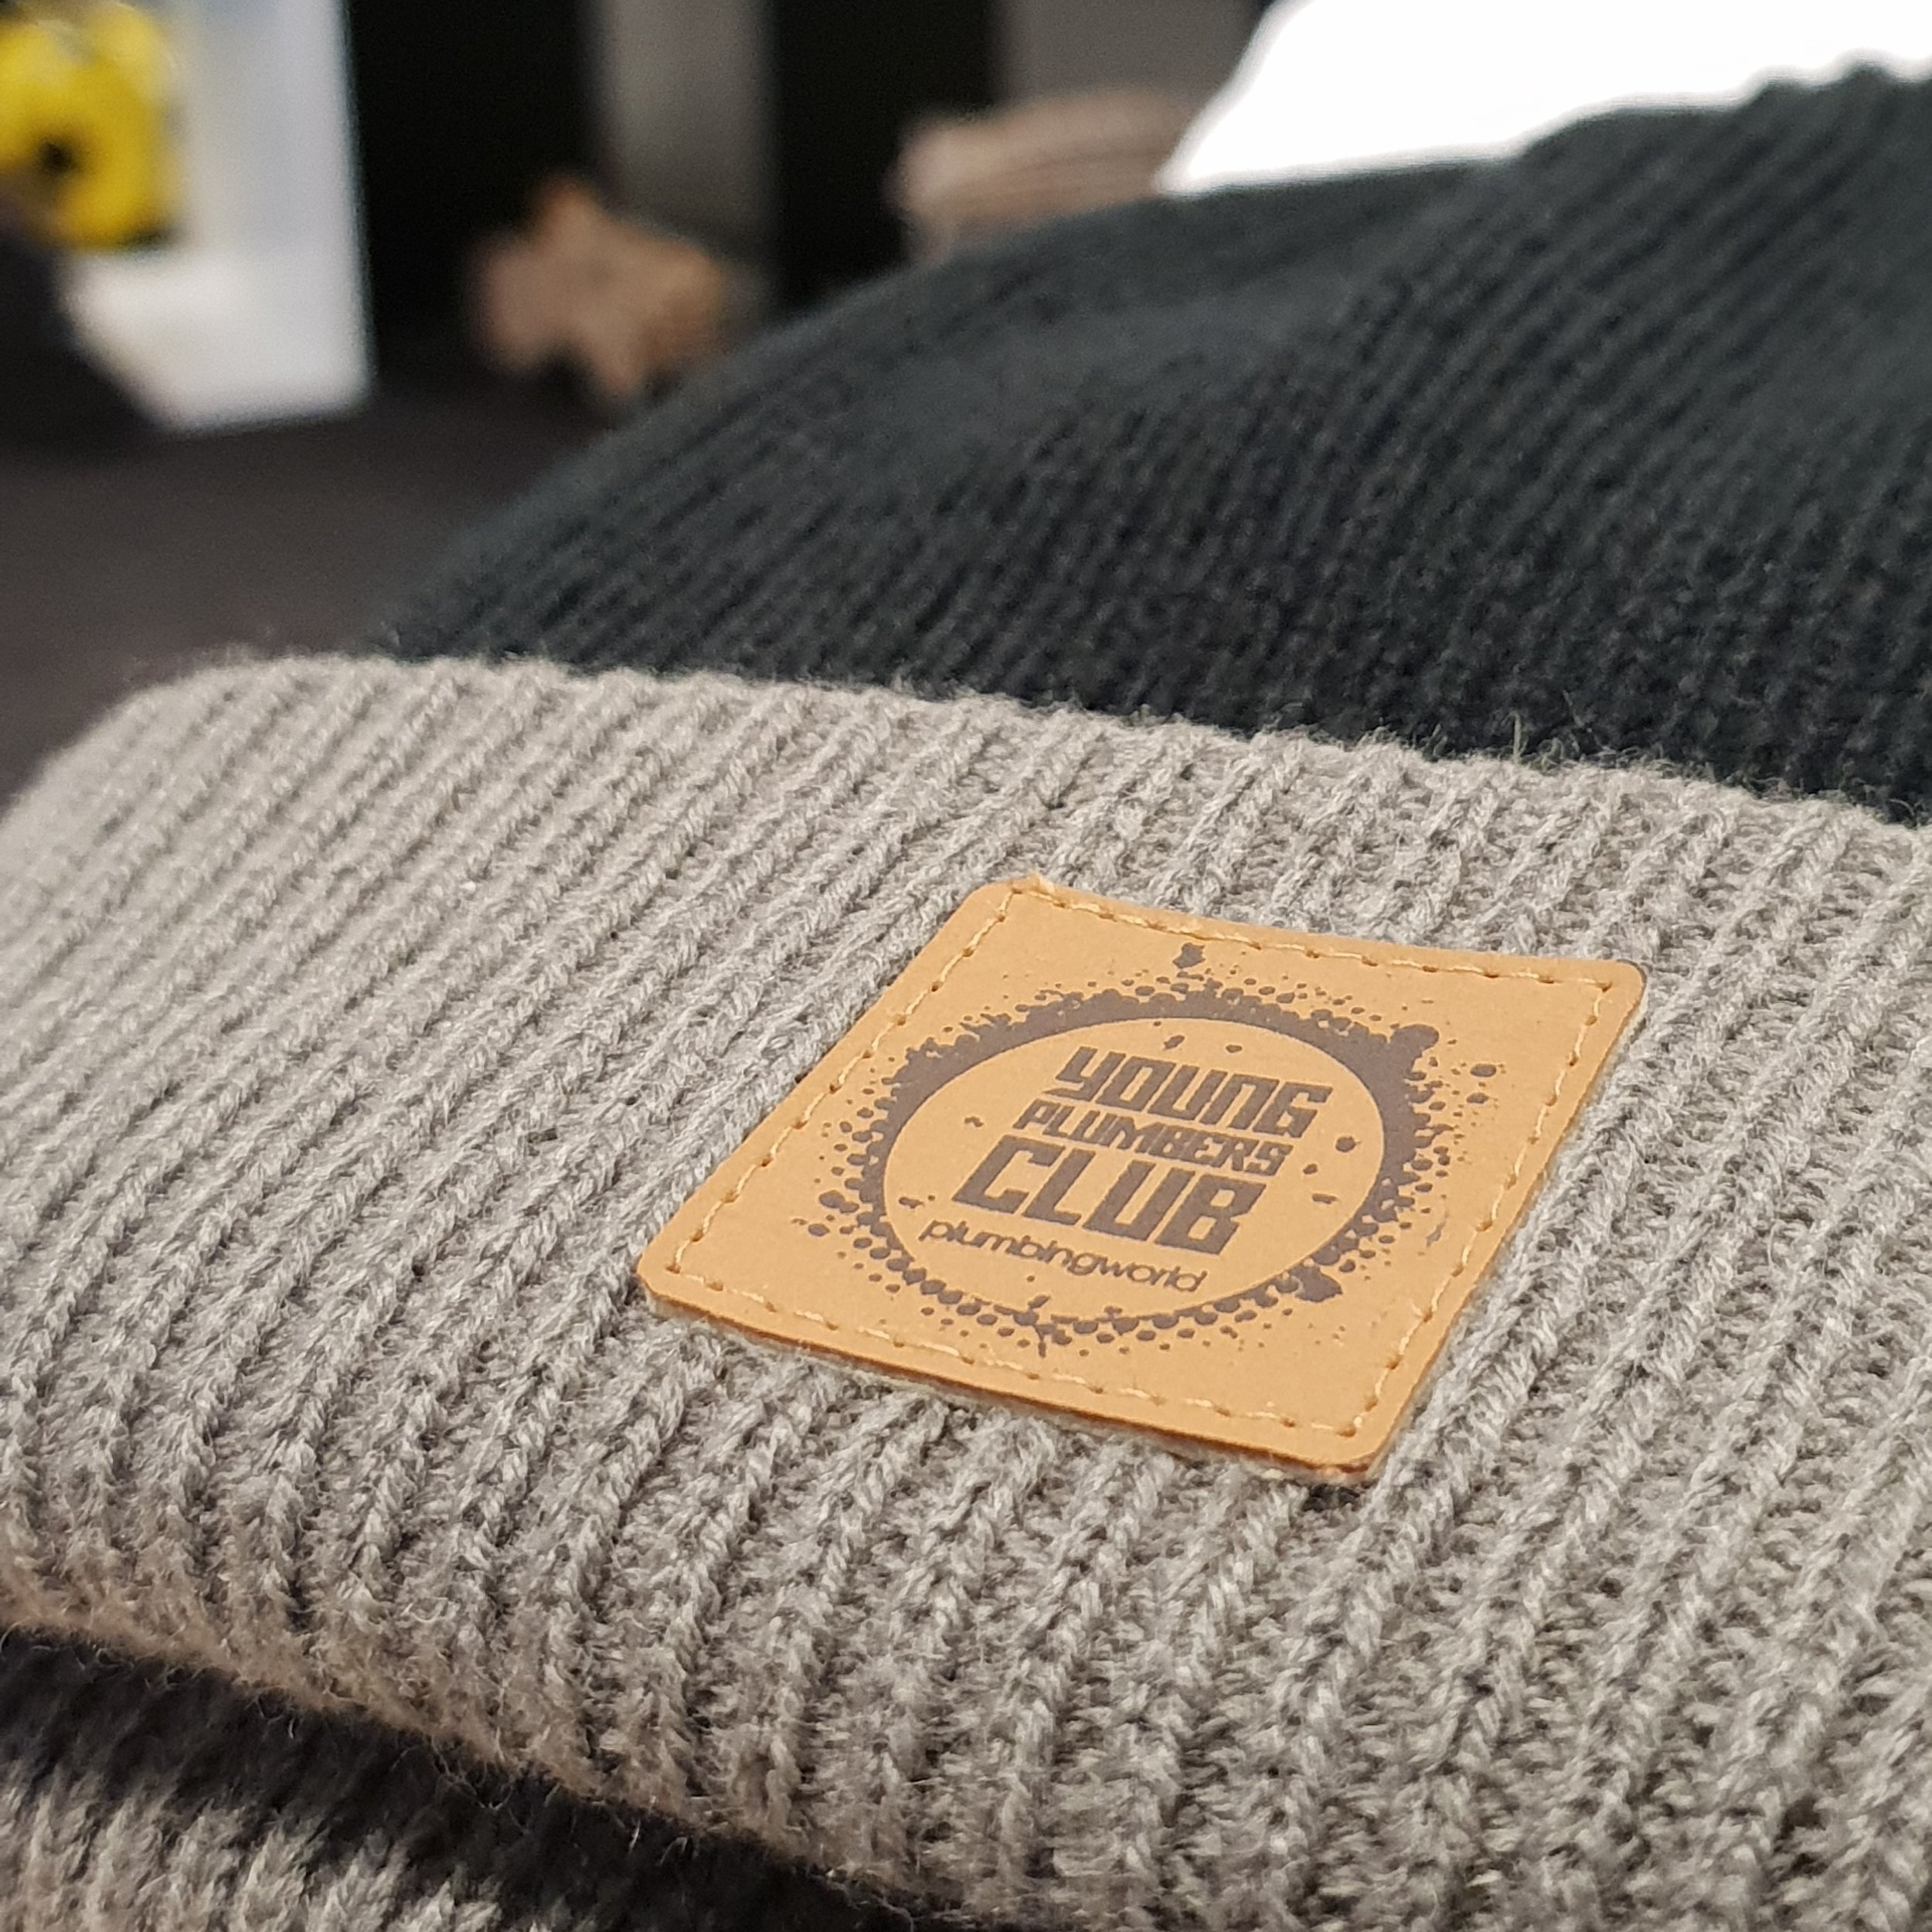 Beanies / suede patch   Plumbing World